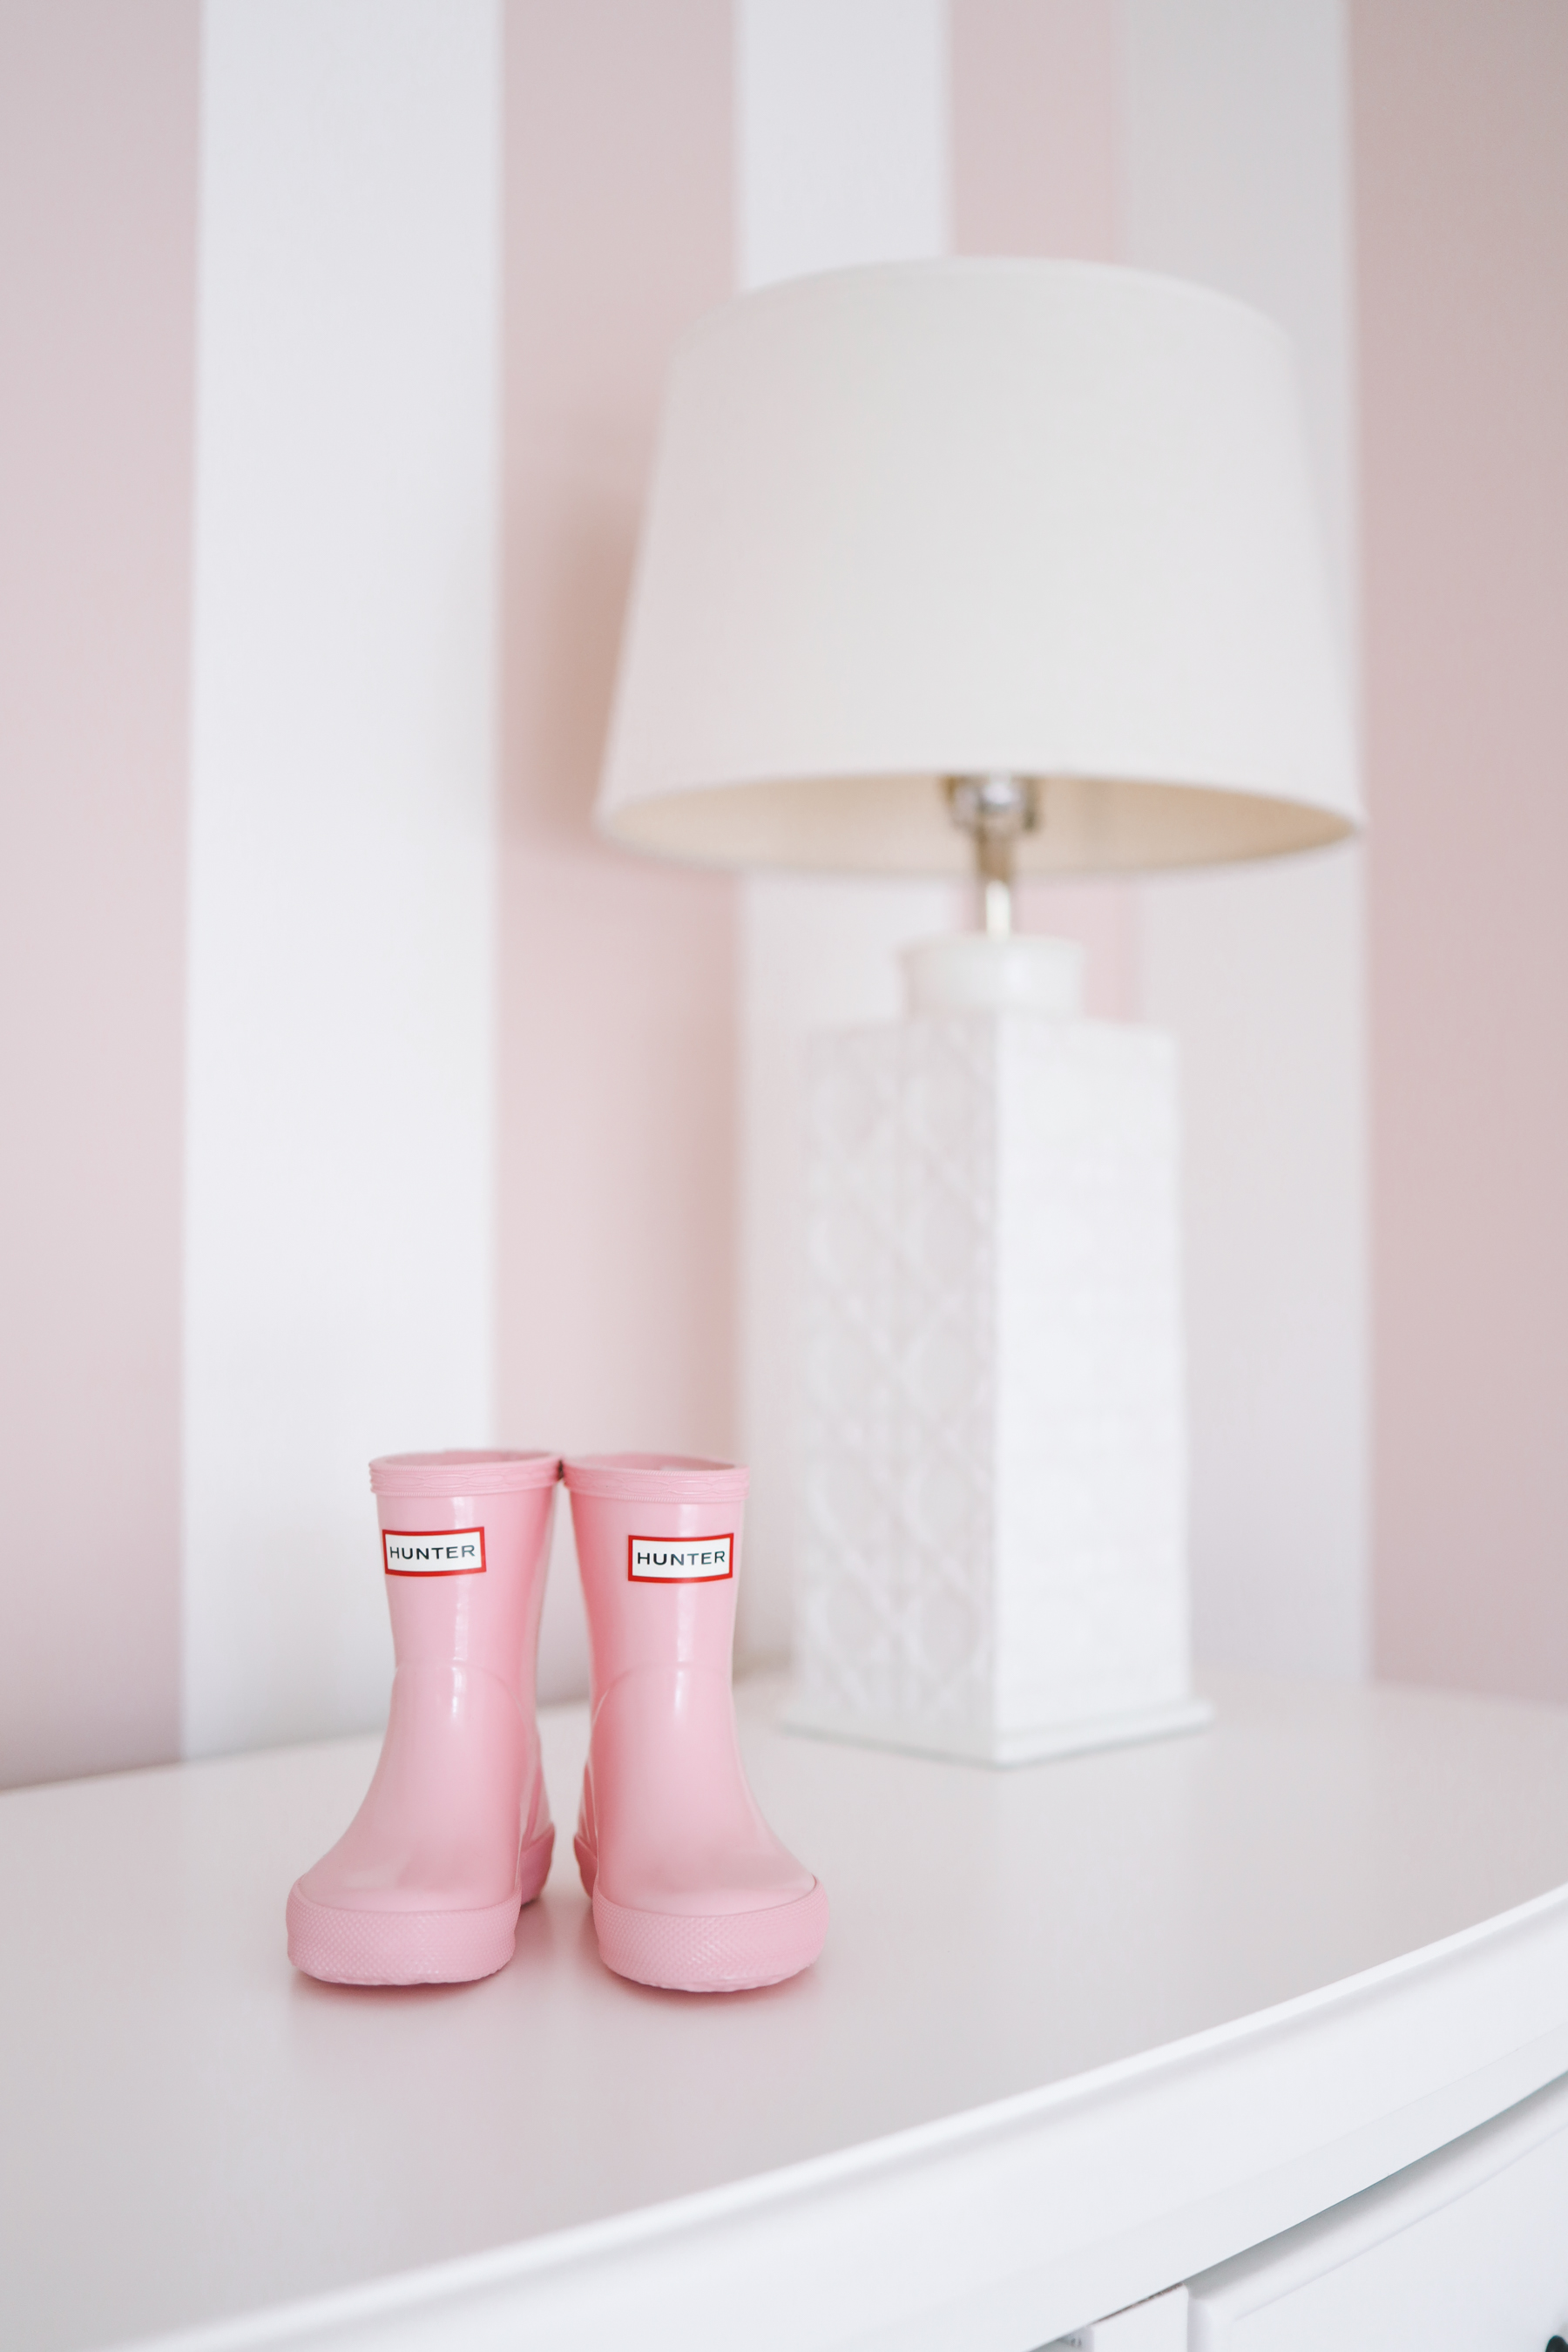 Preppy Girls Room - Pink Hunter rain-boots on a white dresser